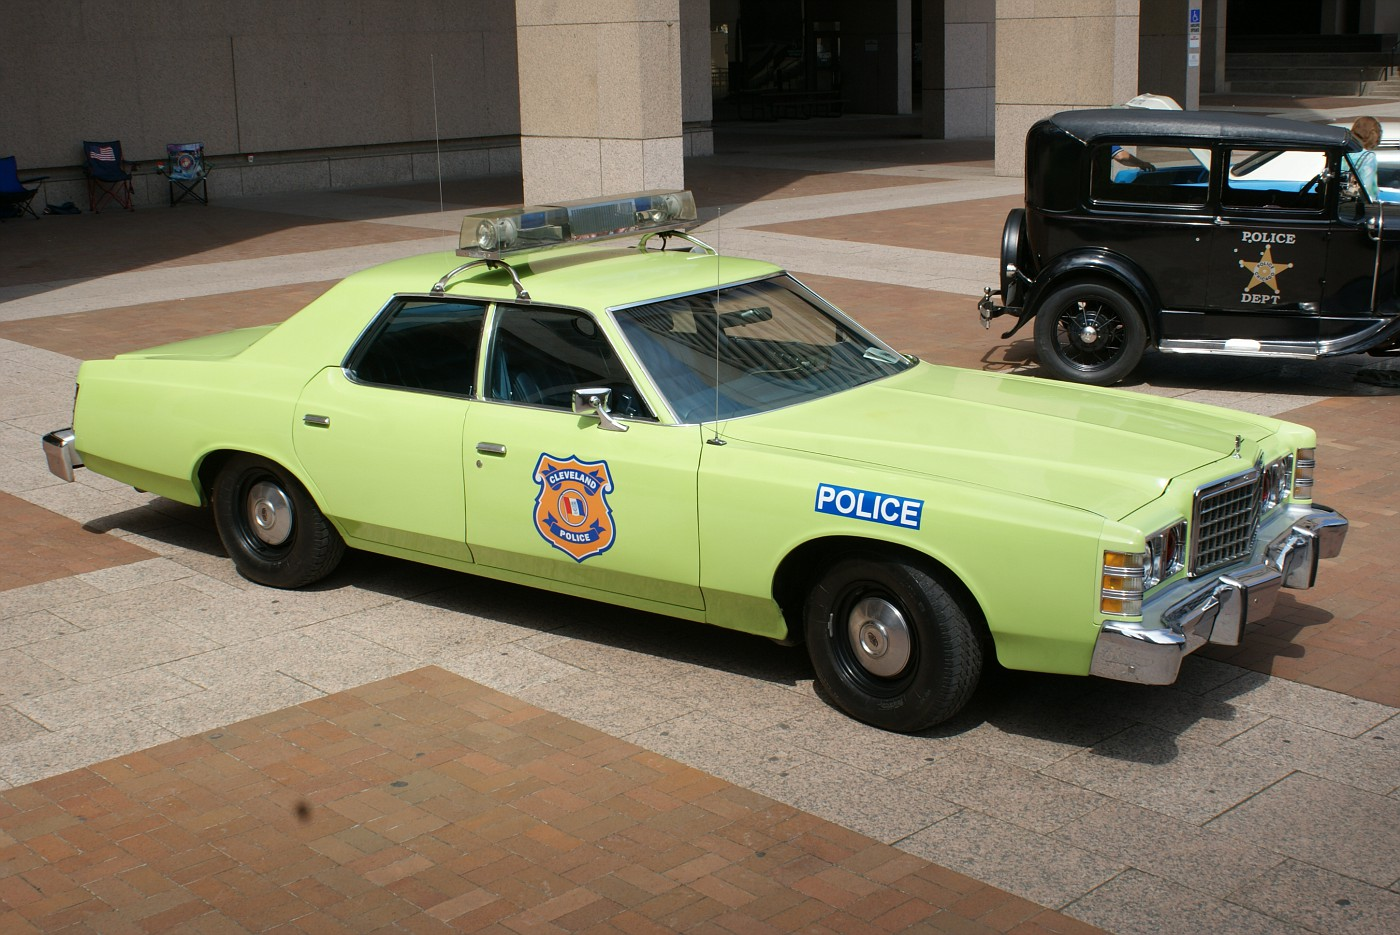 Copcar Dot Com The Home Of The American Police Car Photo ...